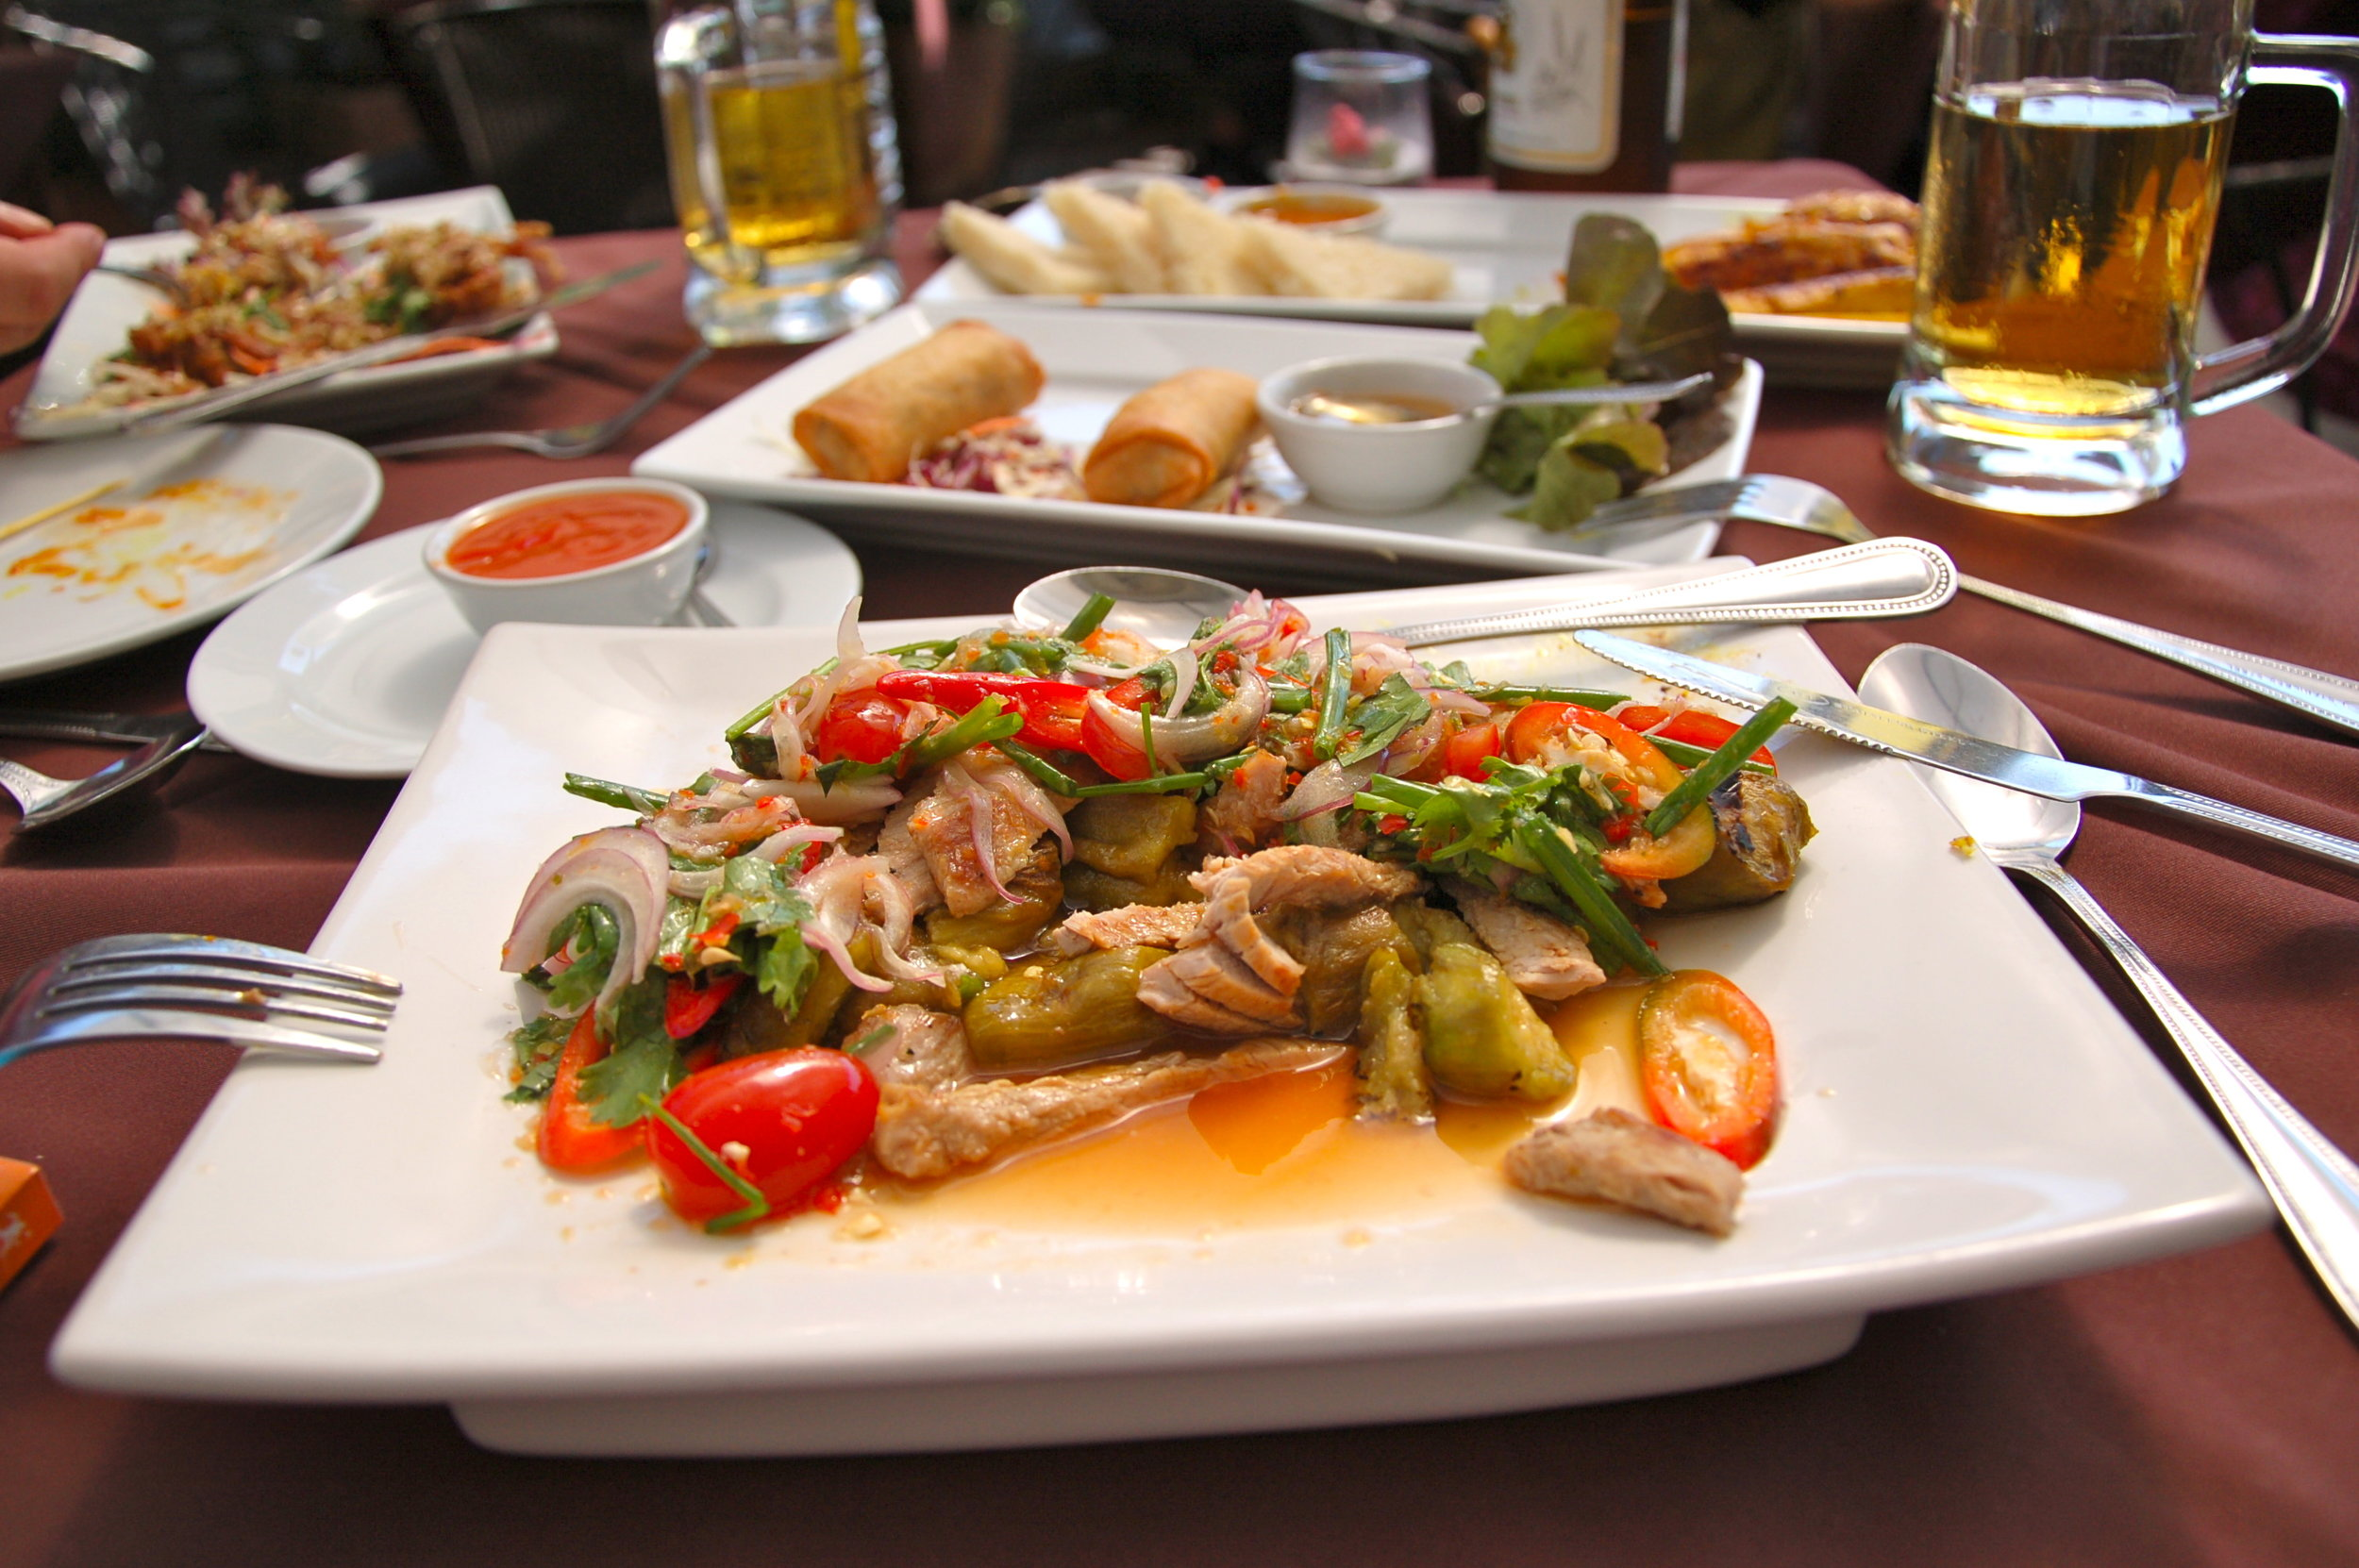 Next-level spicy chicken goes down better with a frosty Singha beer at The Deck at Arun Residence.